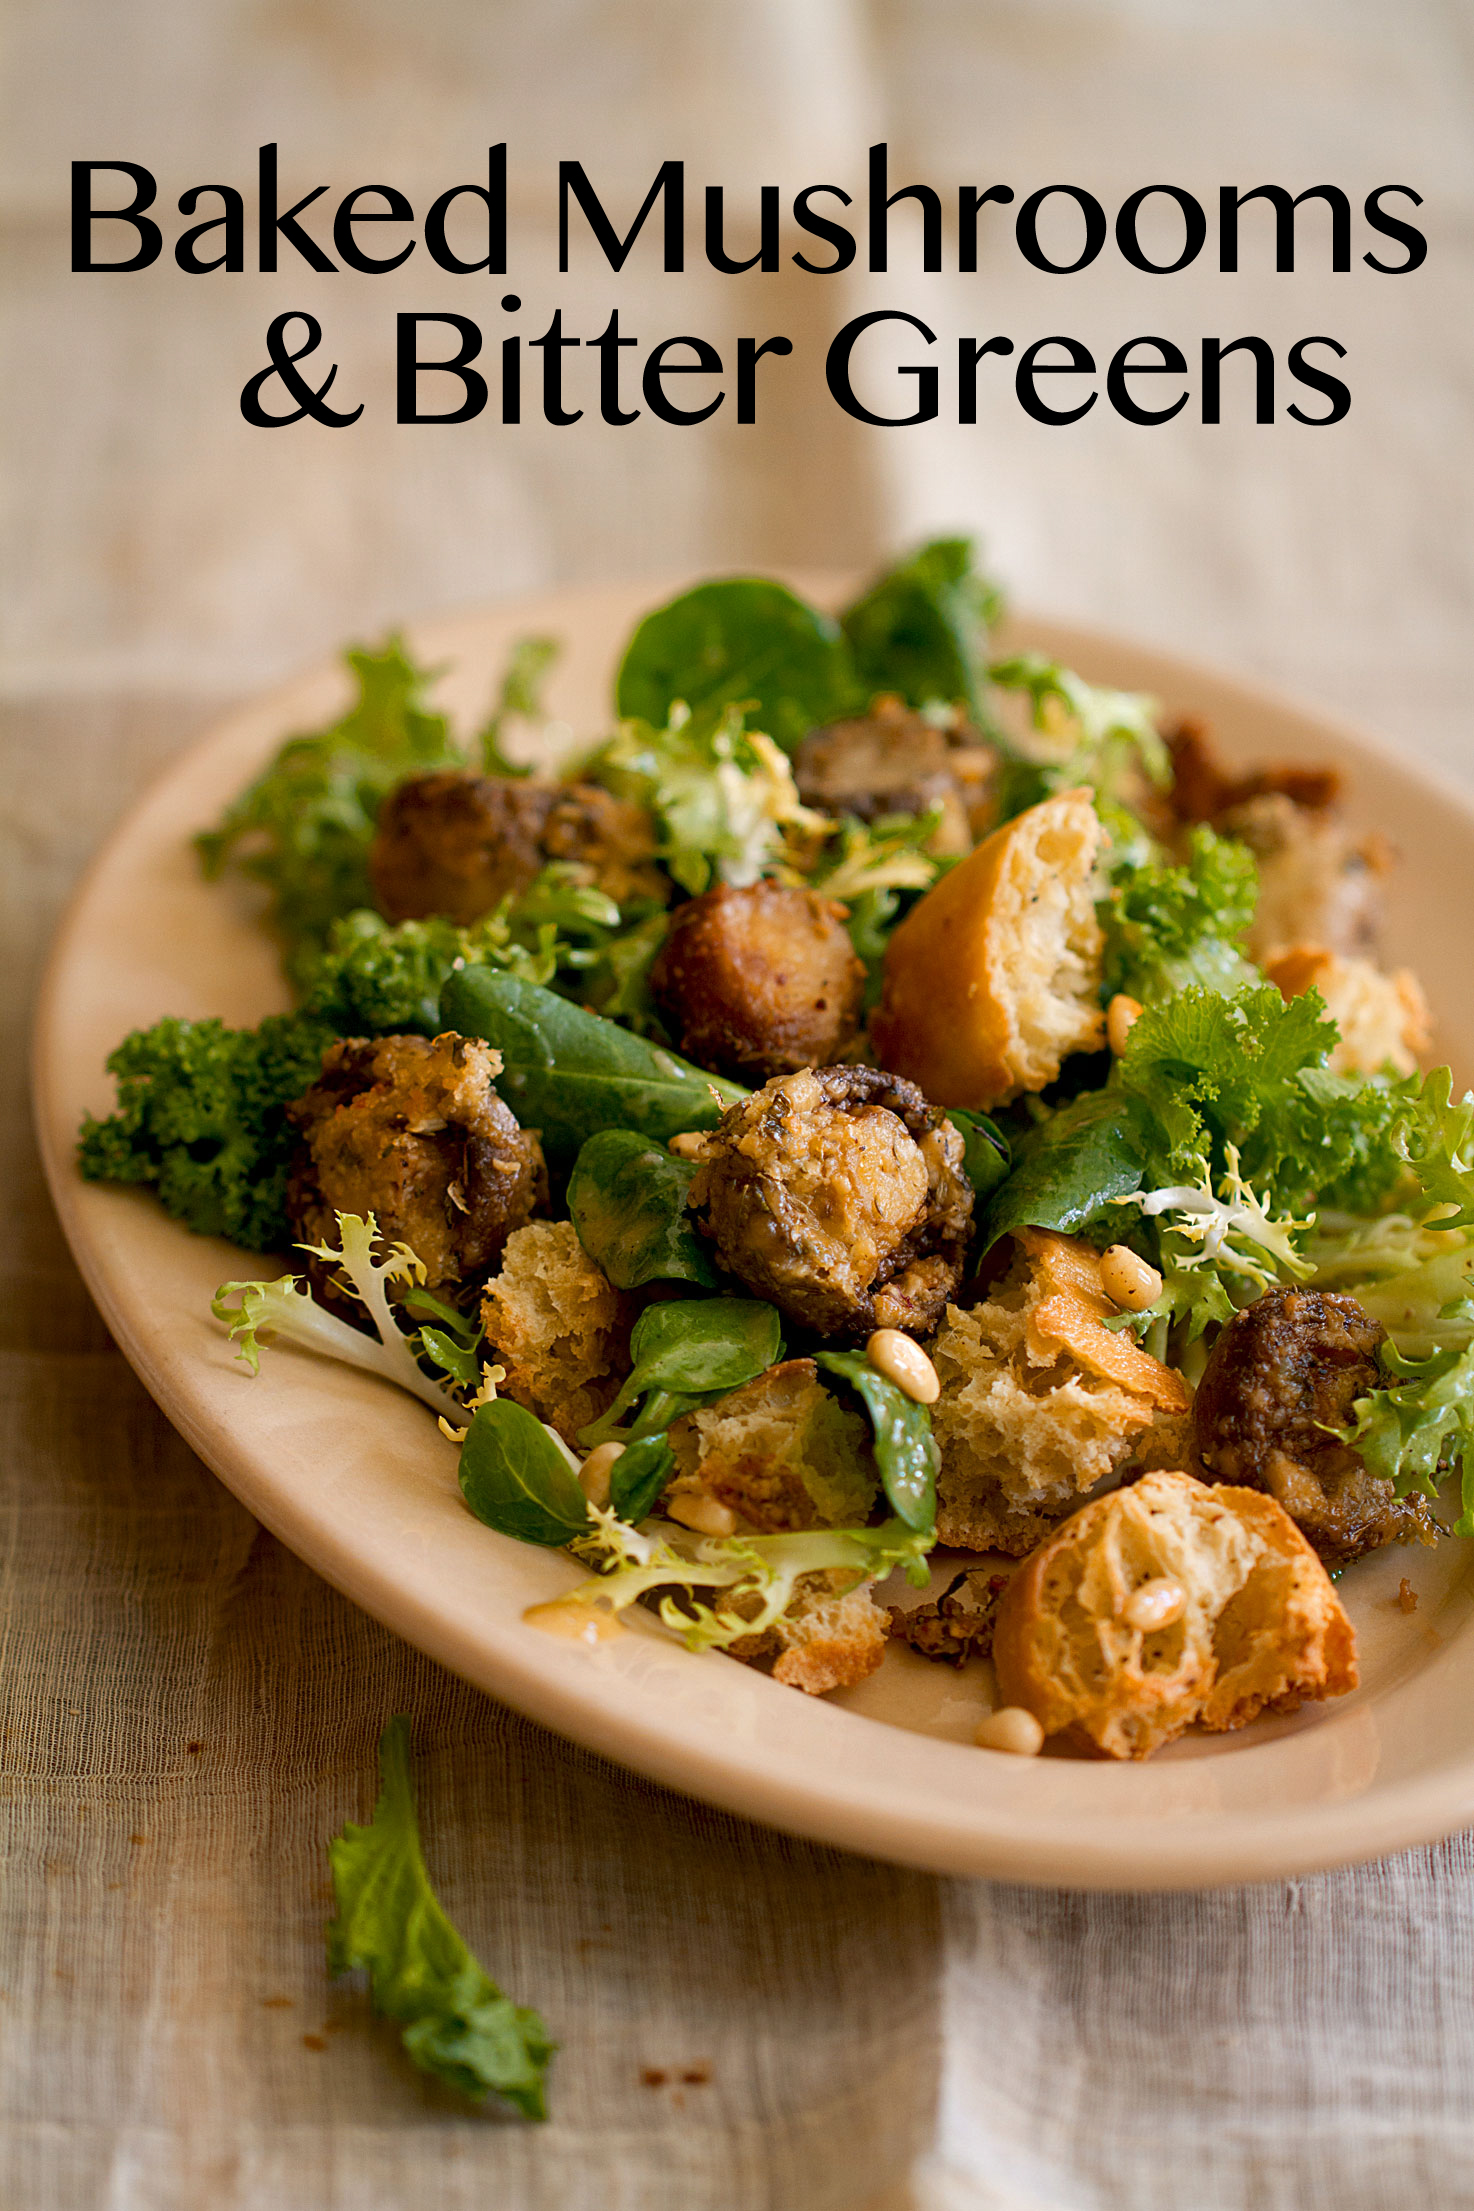 Baked Mushroom and Broken Bread Salad with Bitter Greens